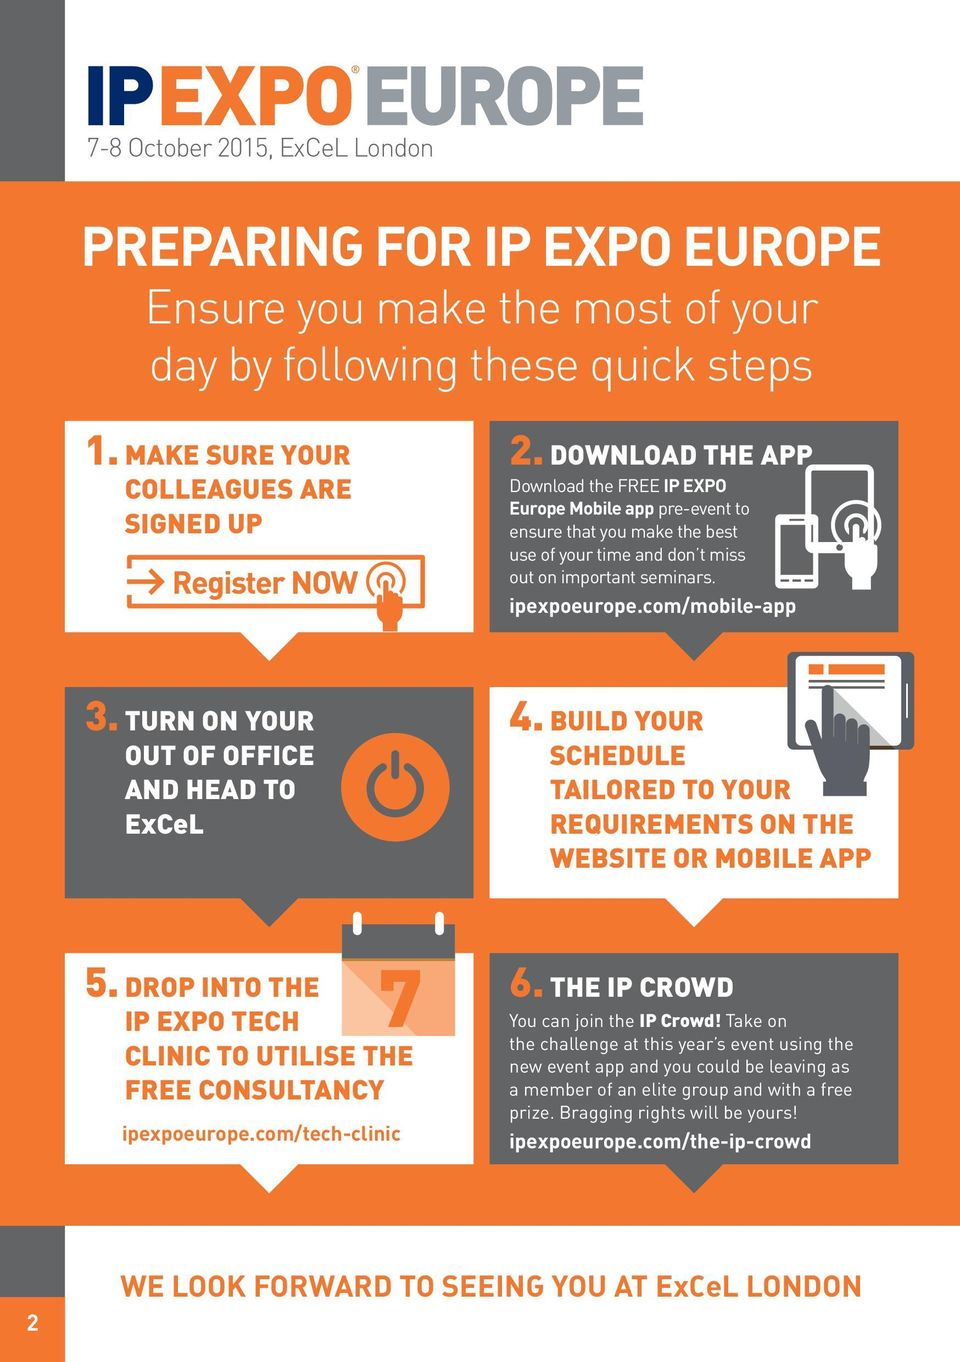 DOWNLOAD THE APP Download the FREE IP EXPO Europe Mobile app pre-event to ensure that you make the best use of your time and don t miss out on important seminars. ipexpoeurope.com/mobile-app 3.